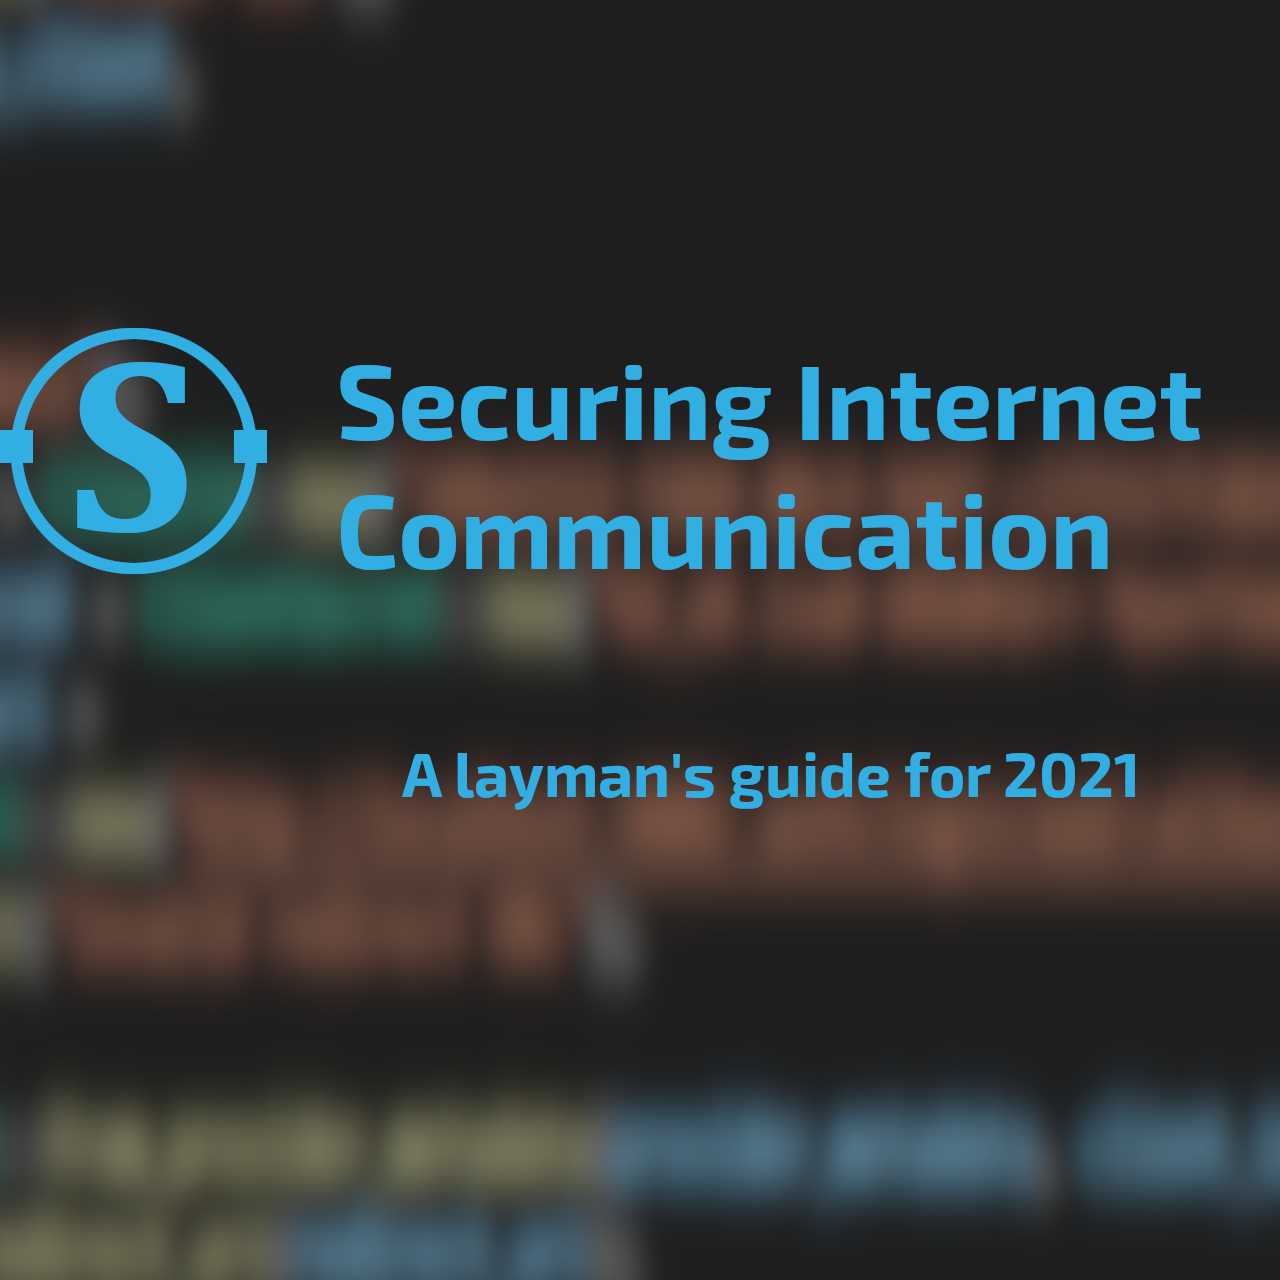 Securing internet communications: a layman's guide (2021)